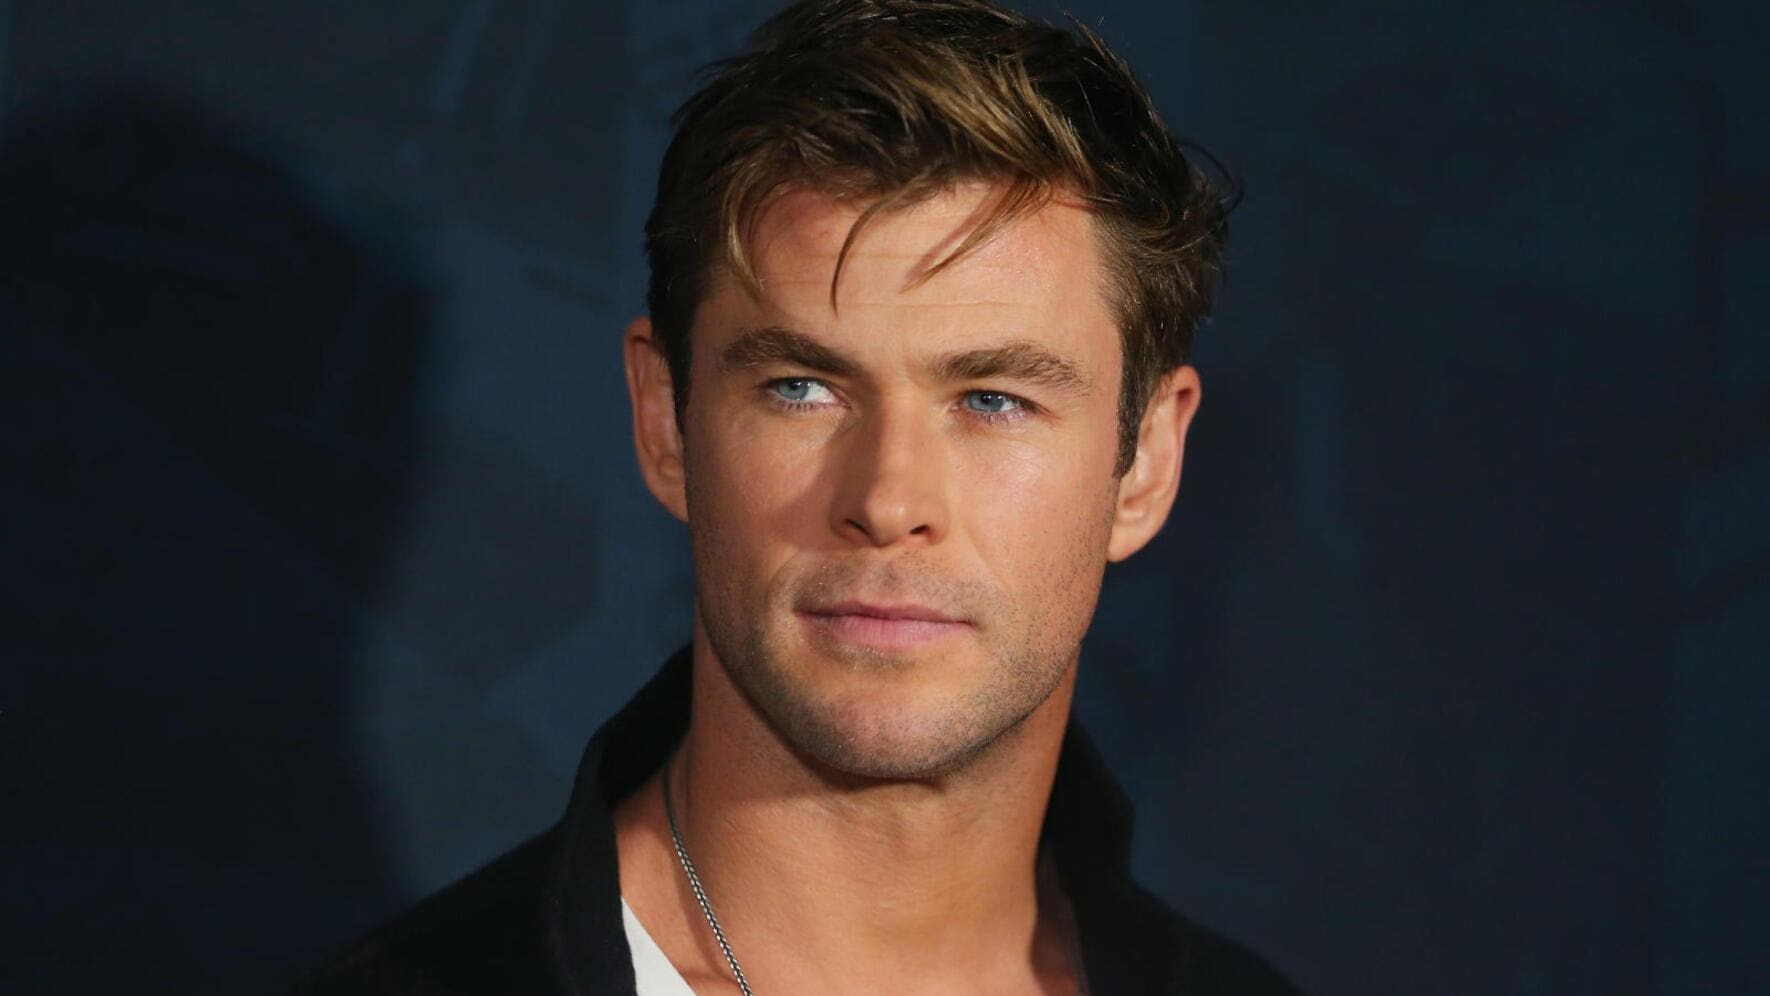 SYDNEY, AUSTRALIA - JUNE 06: Chris Hemsworth attends the TAG Heuer 'Museum In Motion' Australian Launch at Museum of Contemporary Art on June 6, 2018 in Sydney, Australia. (Photo by Don Arnold/Getty Images)